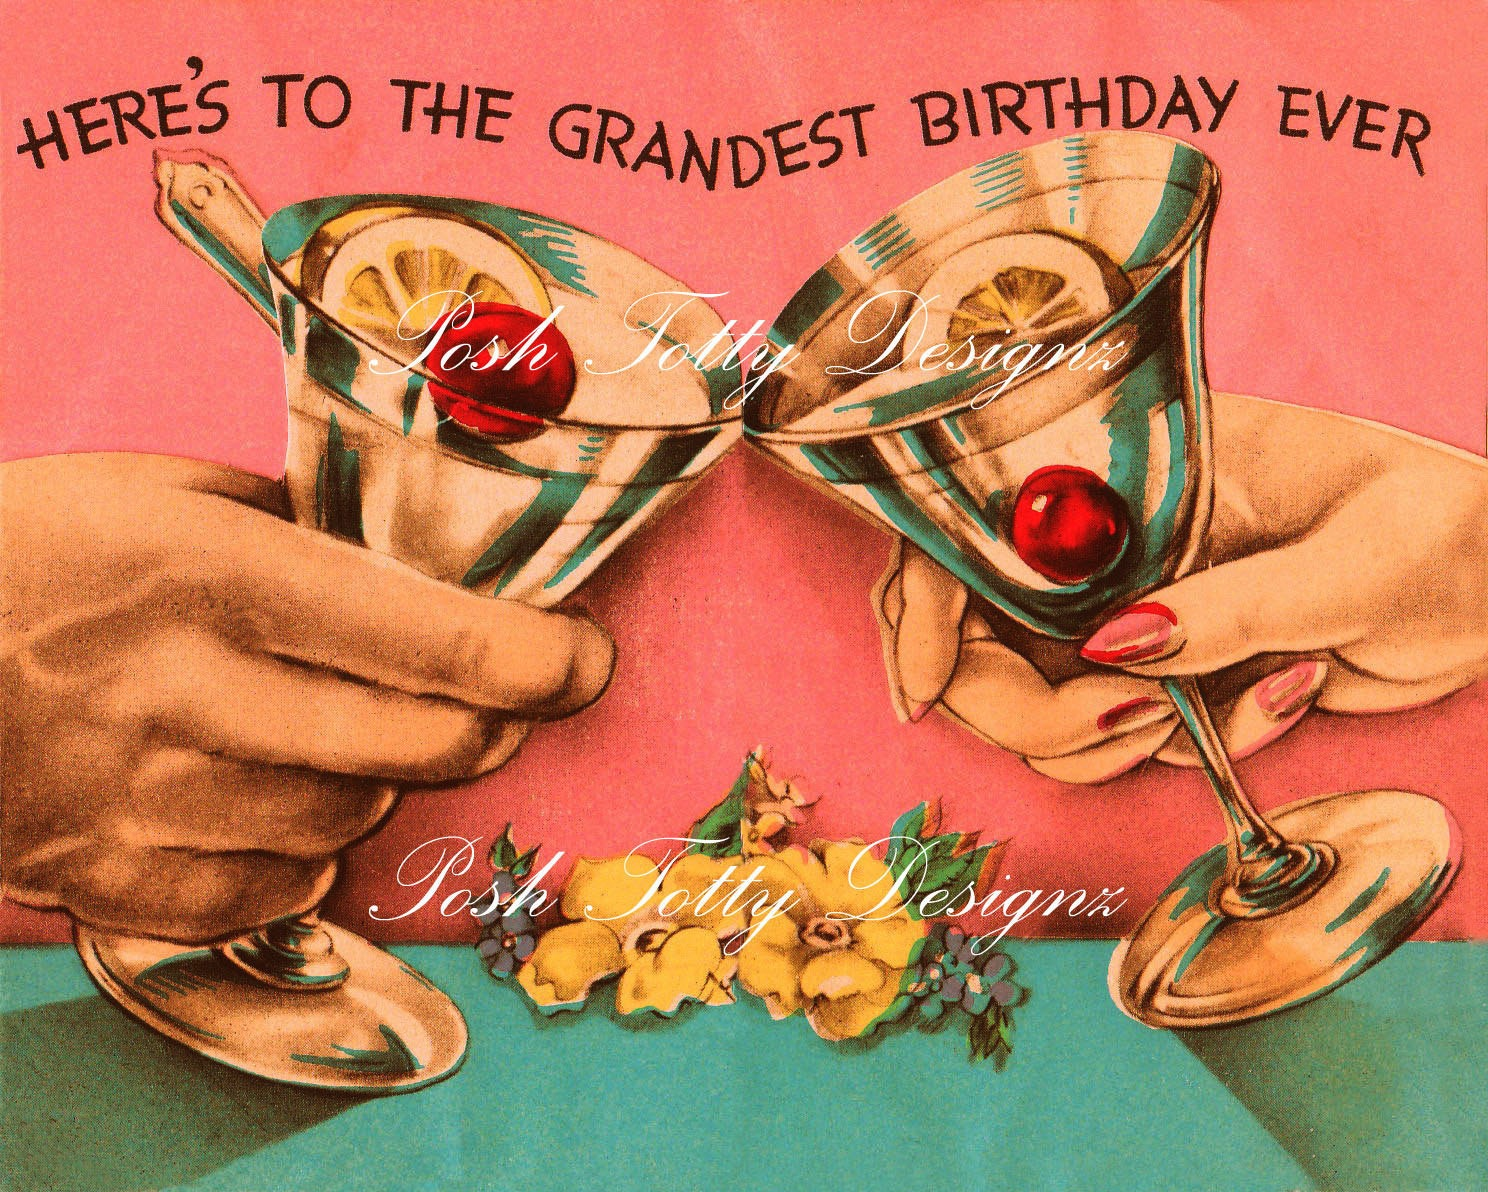 Vintage 1930s Birthday Cocktail Art Deco Greetings Card